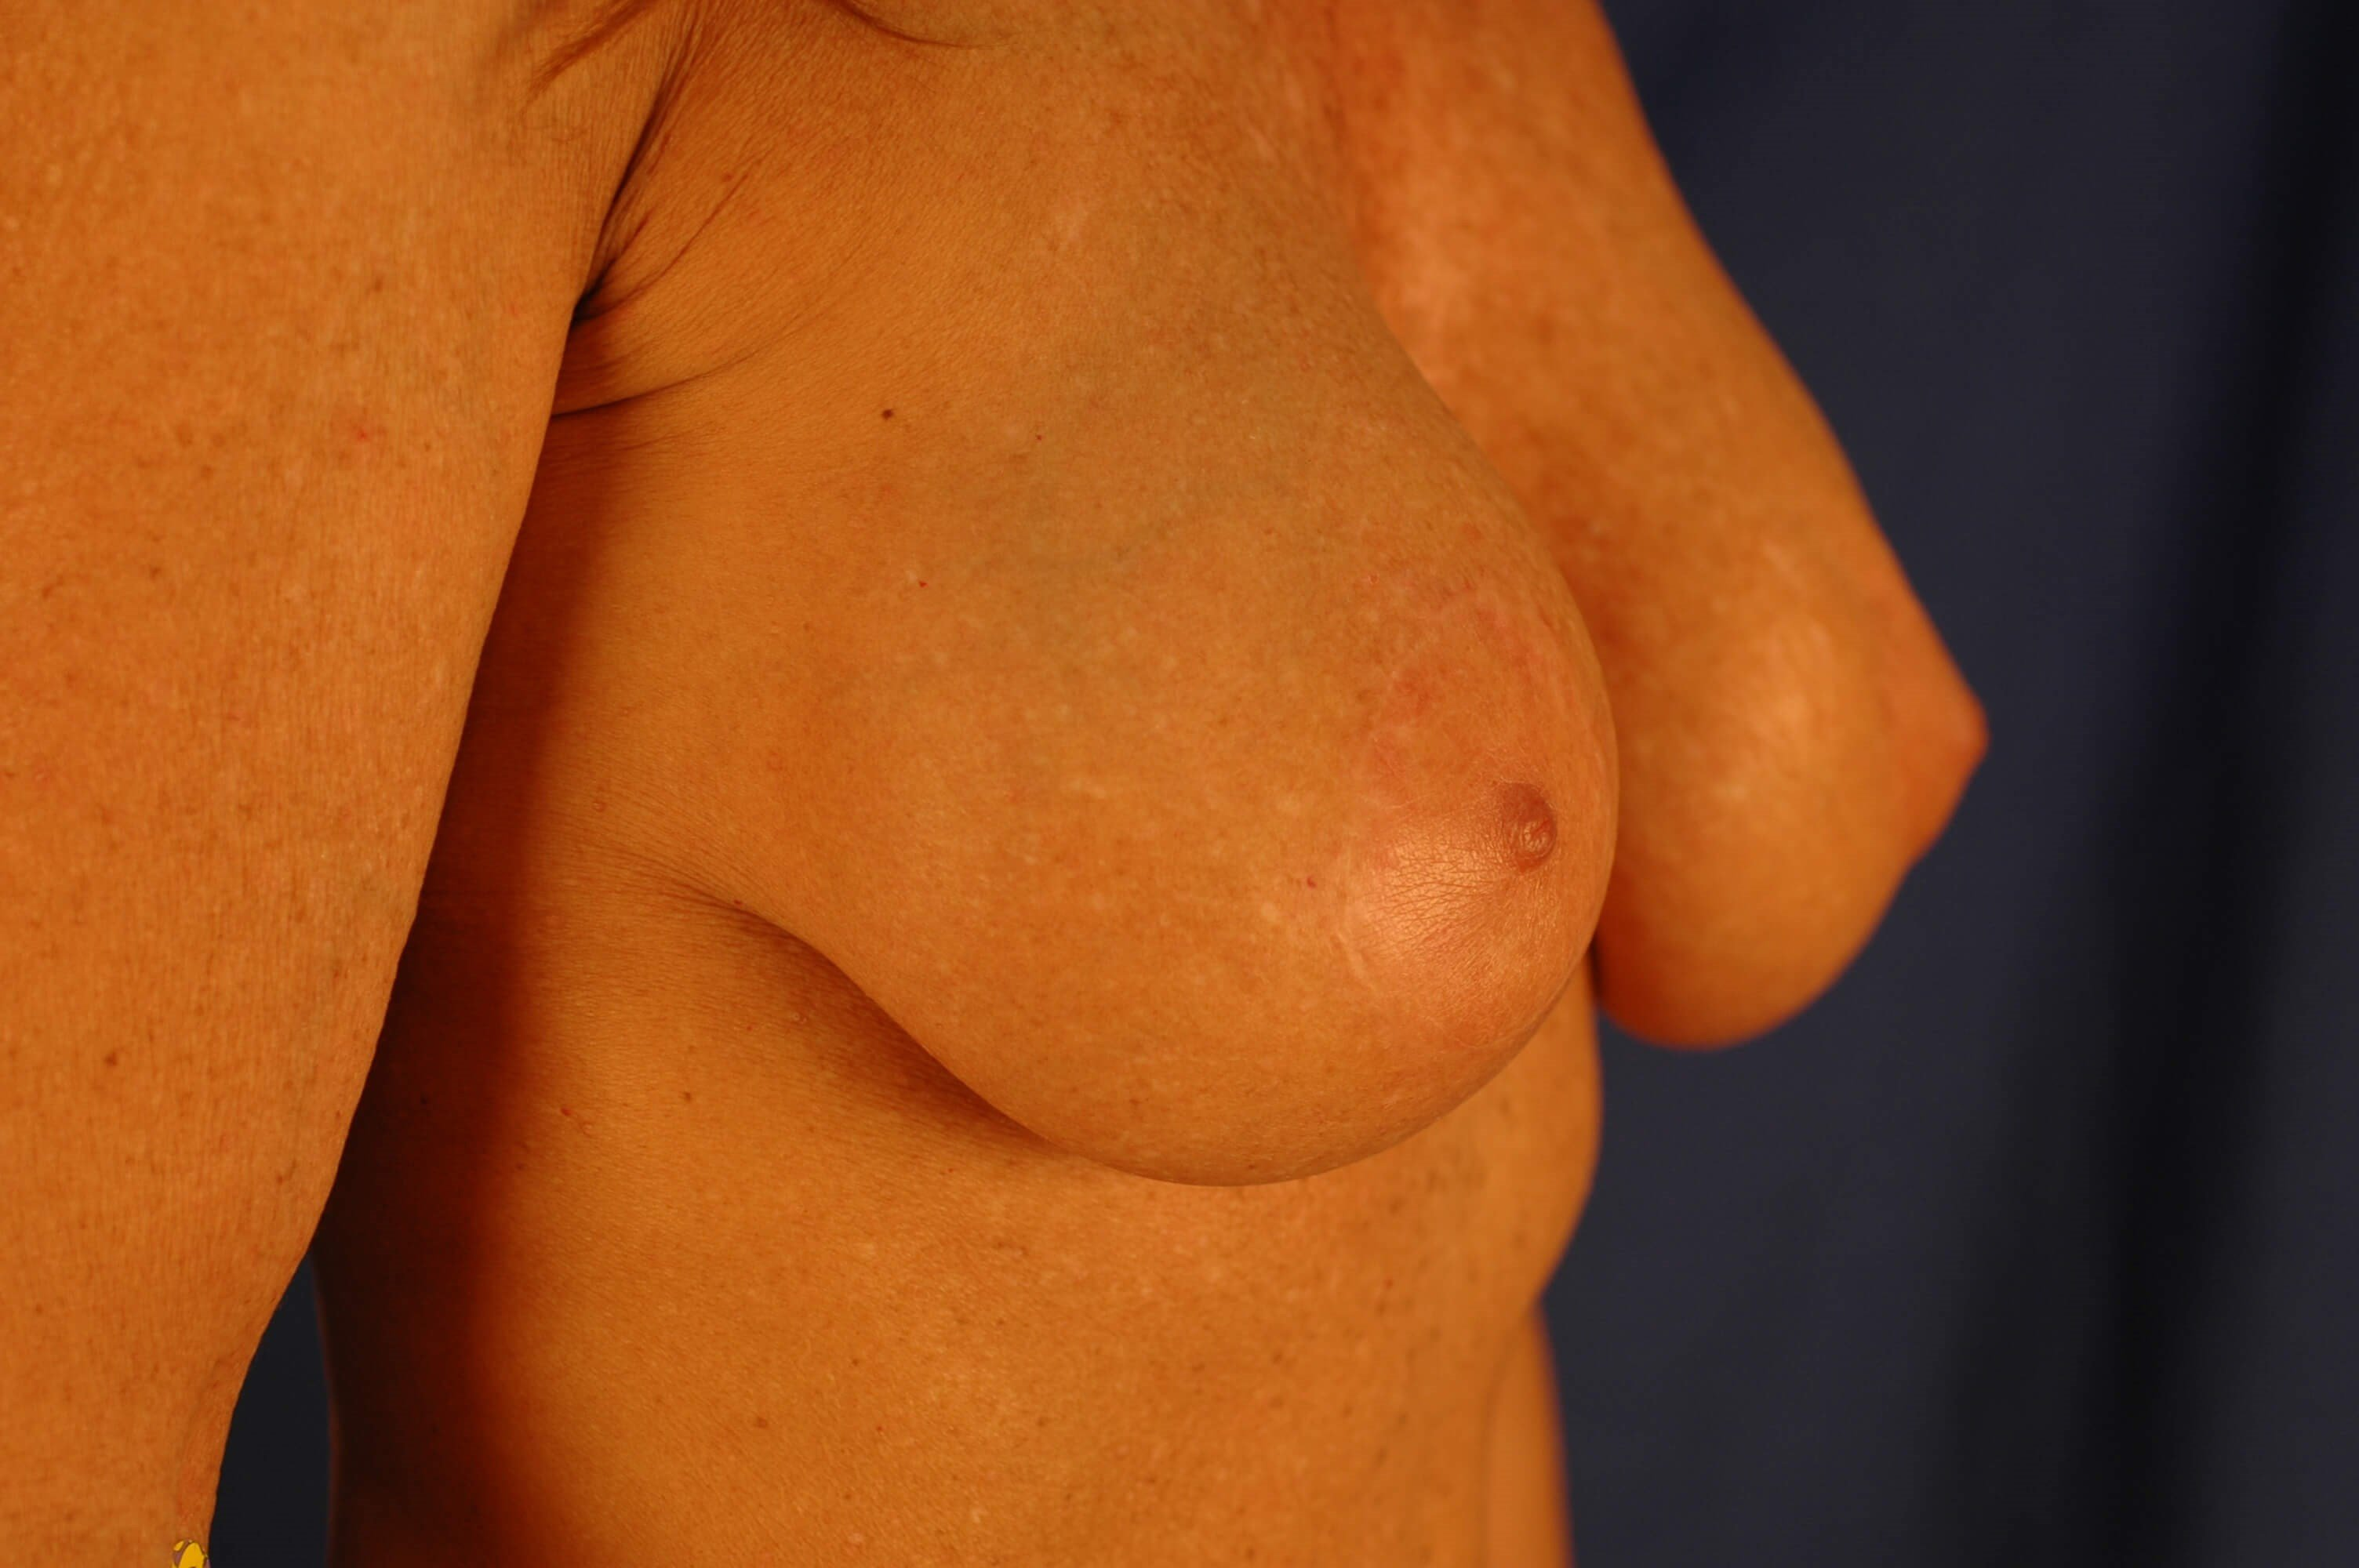 Newport Beach Breast Lift &Aug Oblique View After